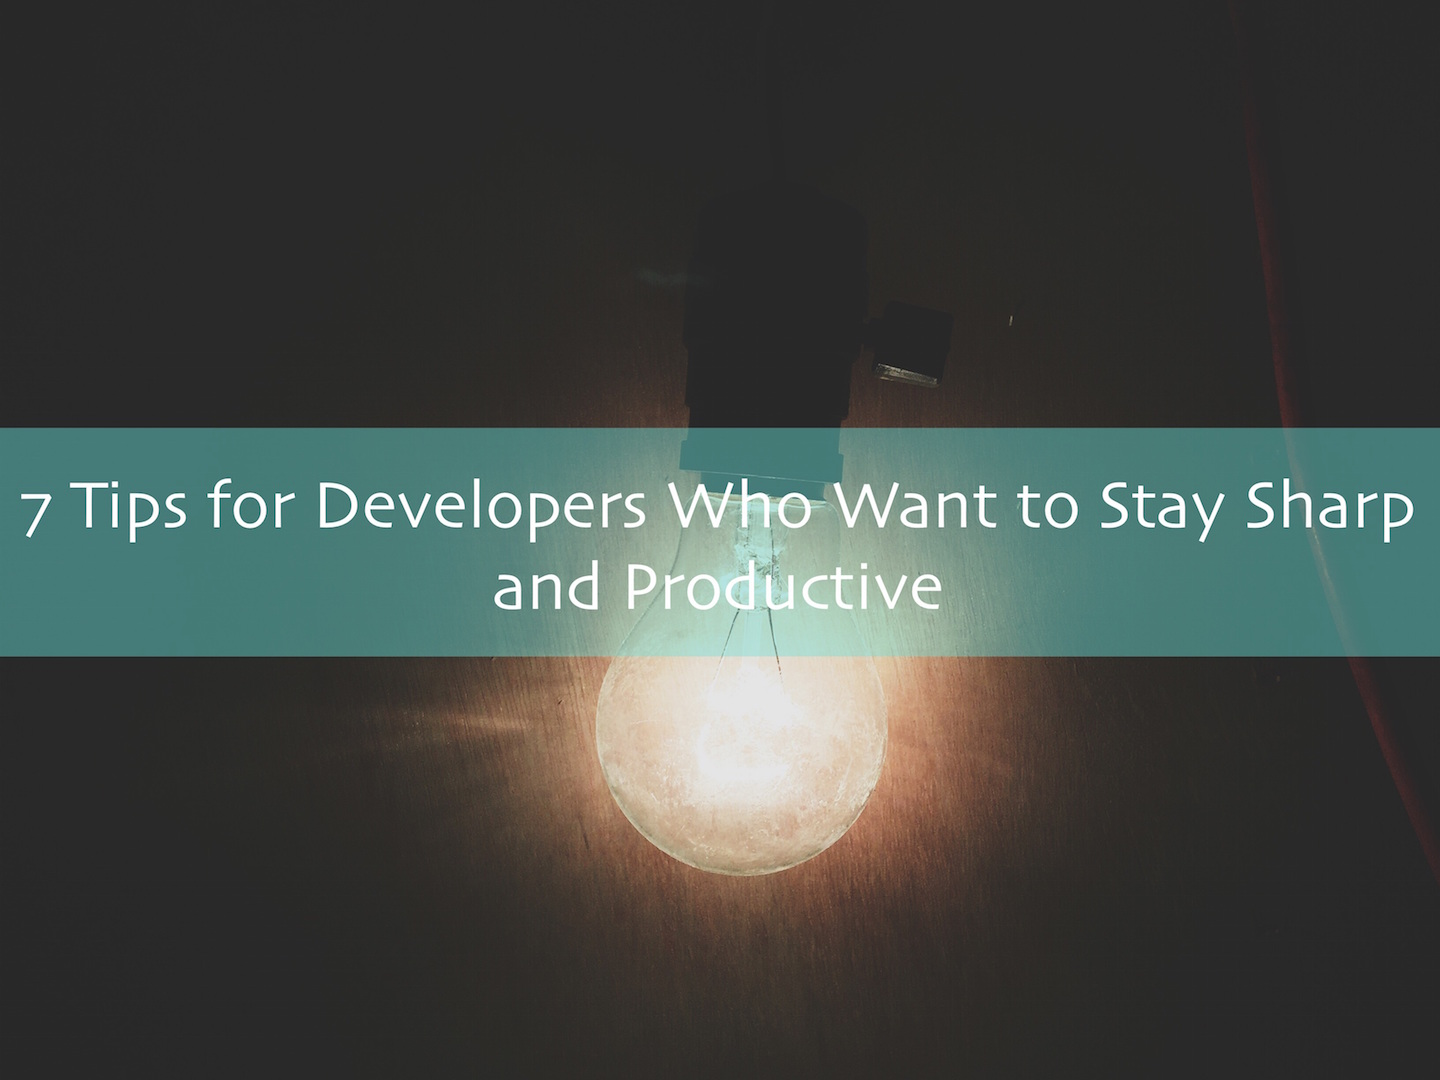 7 Tips for Developers Who Want to Stay Sharp and Productive